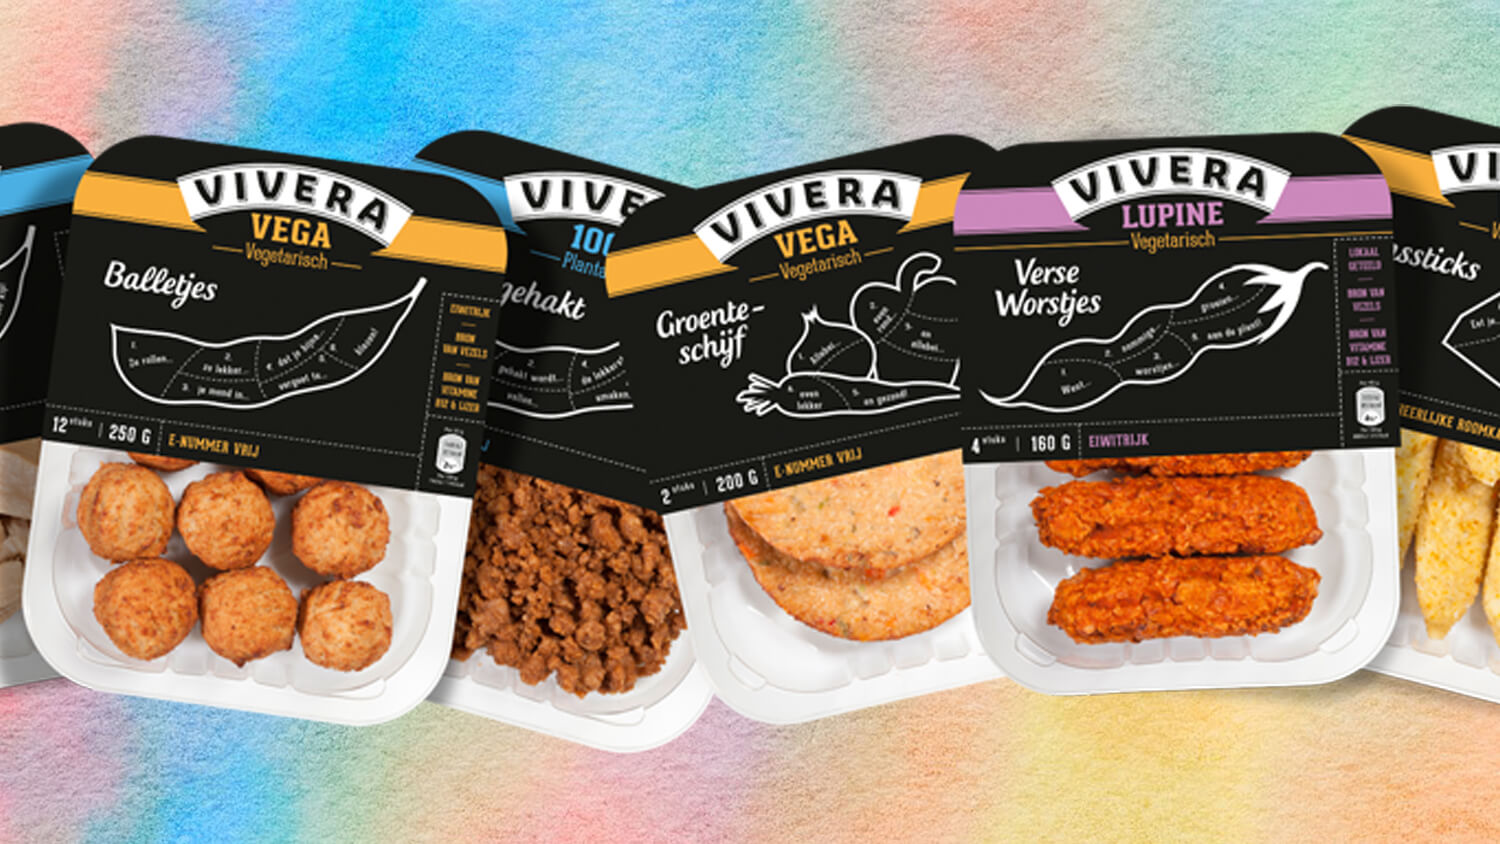 Vegan Product Launches in the UK Increased 200% in 2018